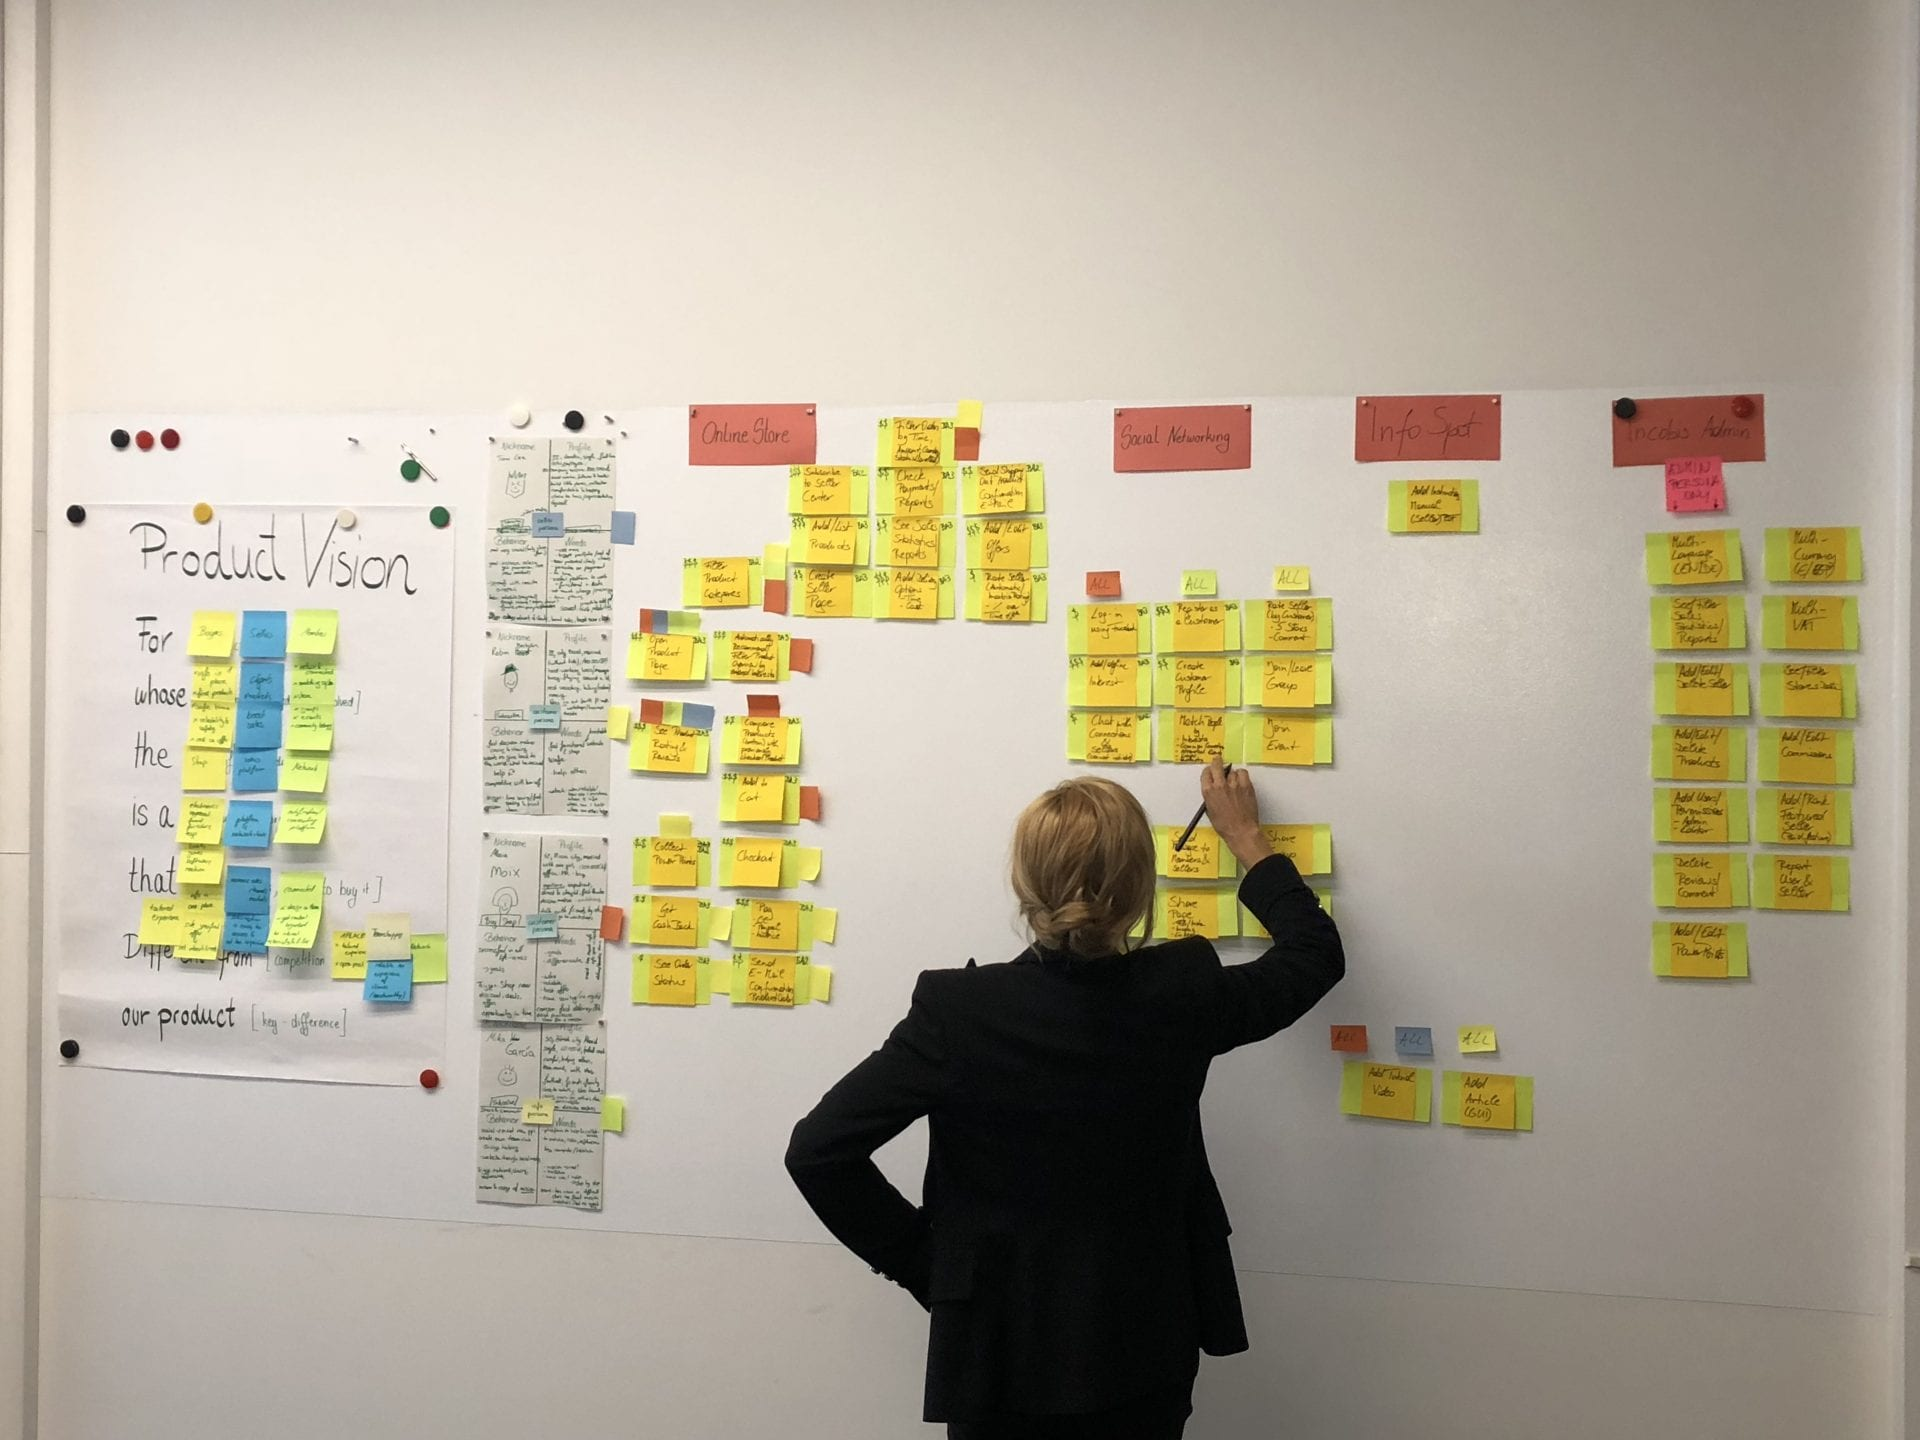 UX Basics 101: What I need to know to develop a Digital Product